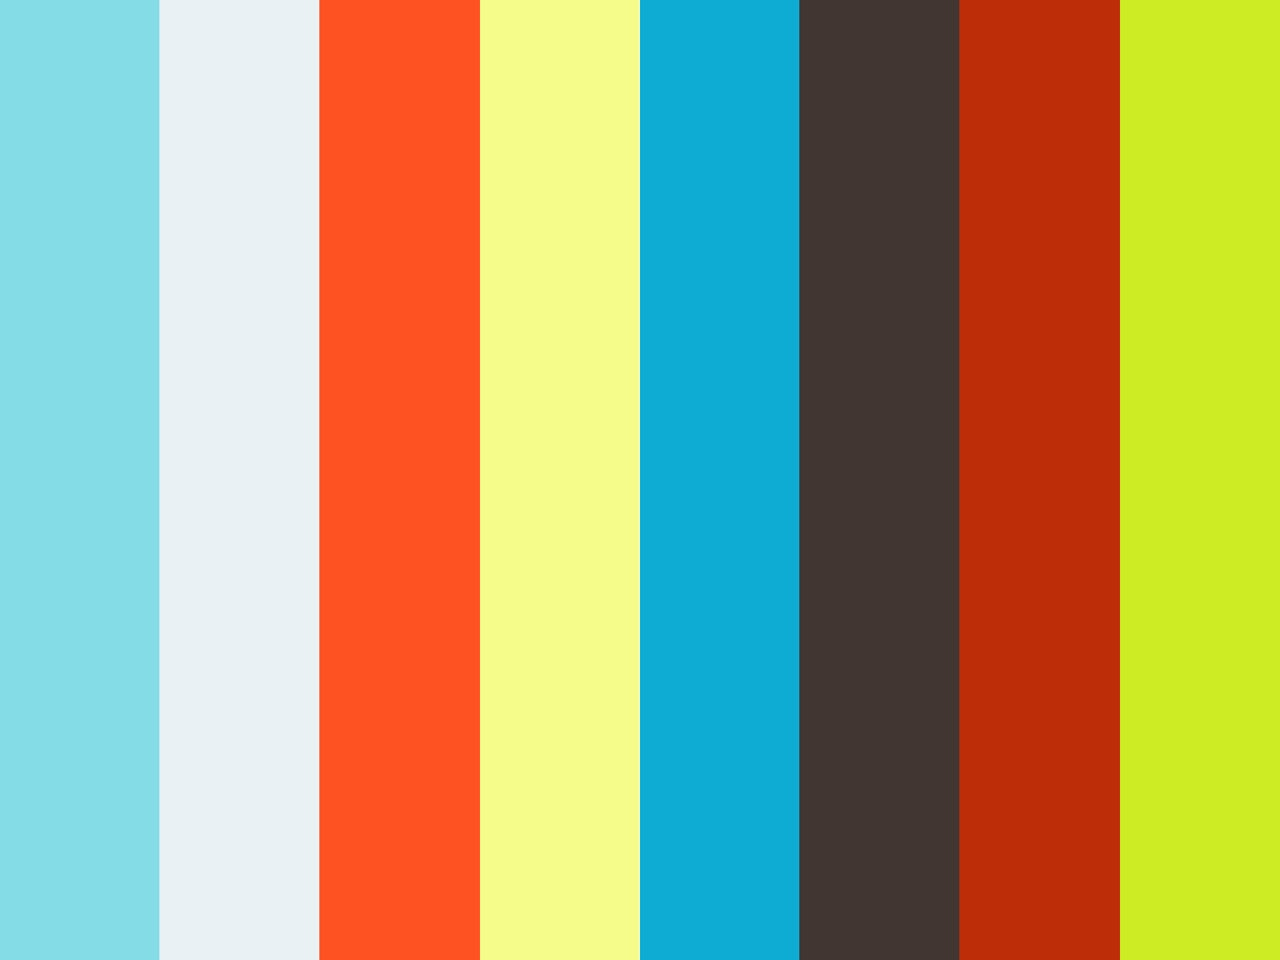 Bigtalk Pictures